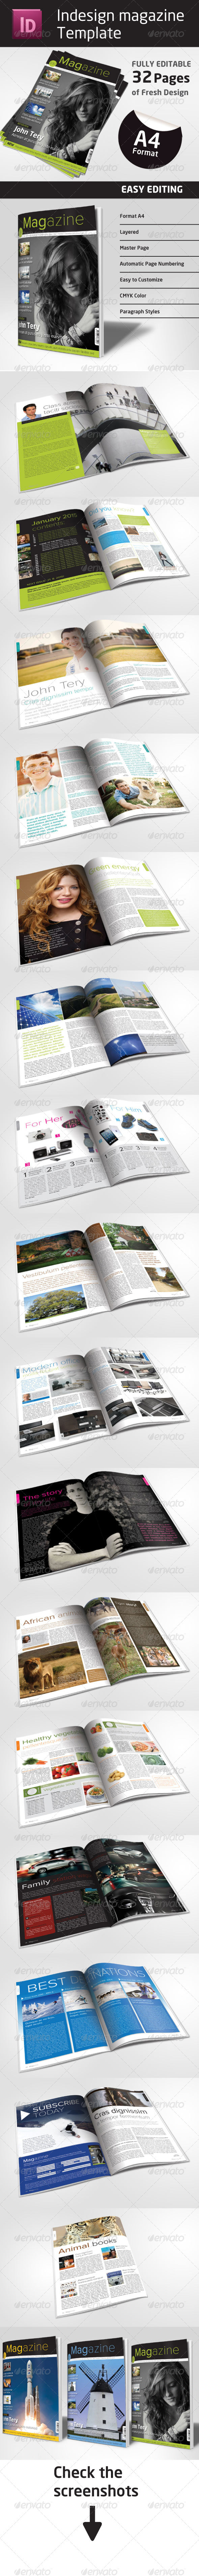 GraphicRiver 32 Pages Indesign Magazine Template in A4 Format 3909537